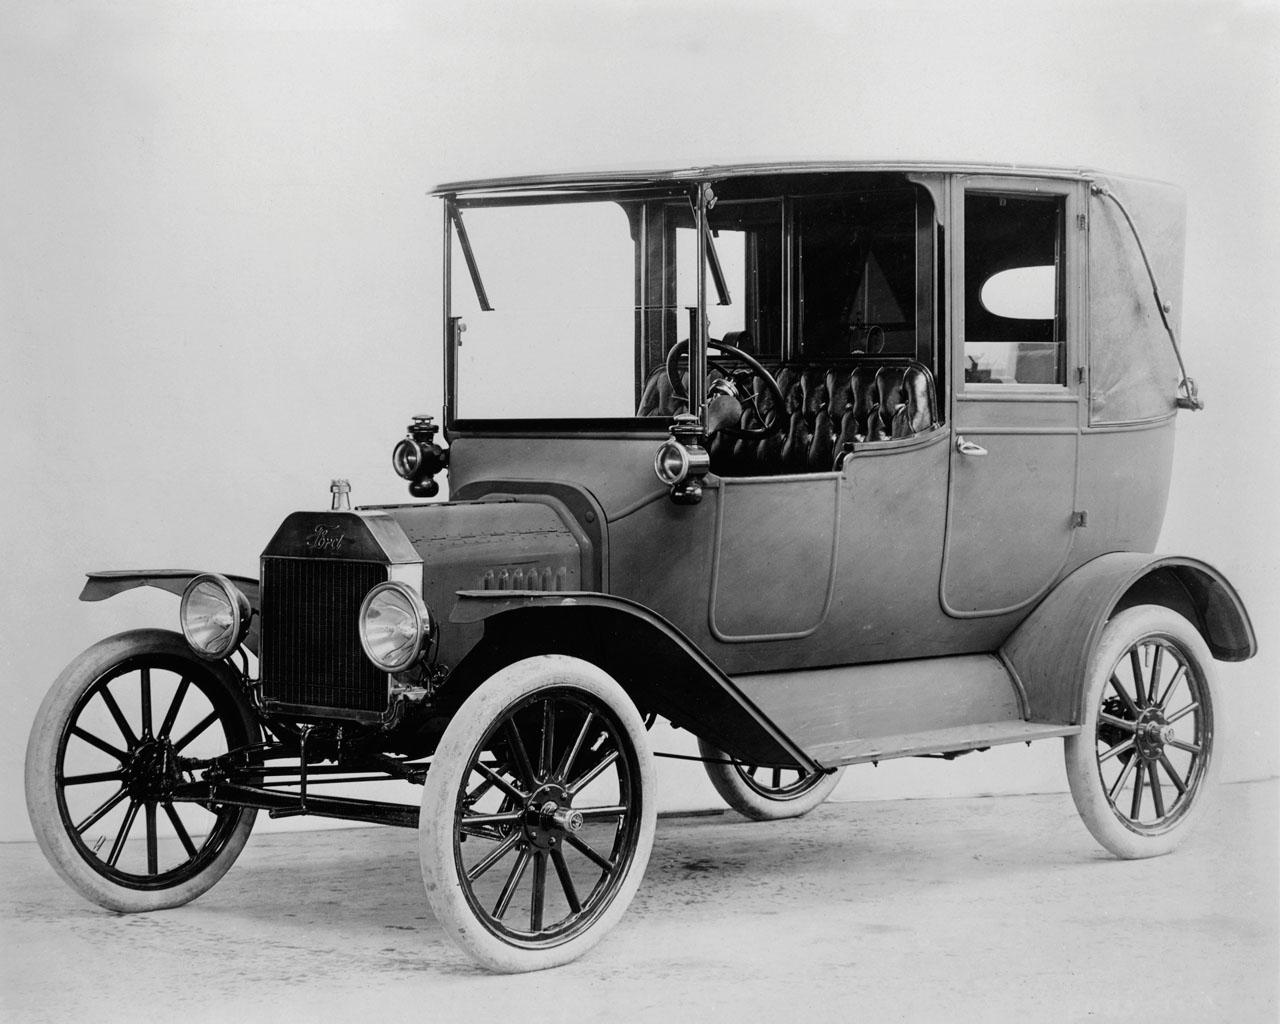 ford model t related - photo #45